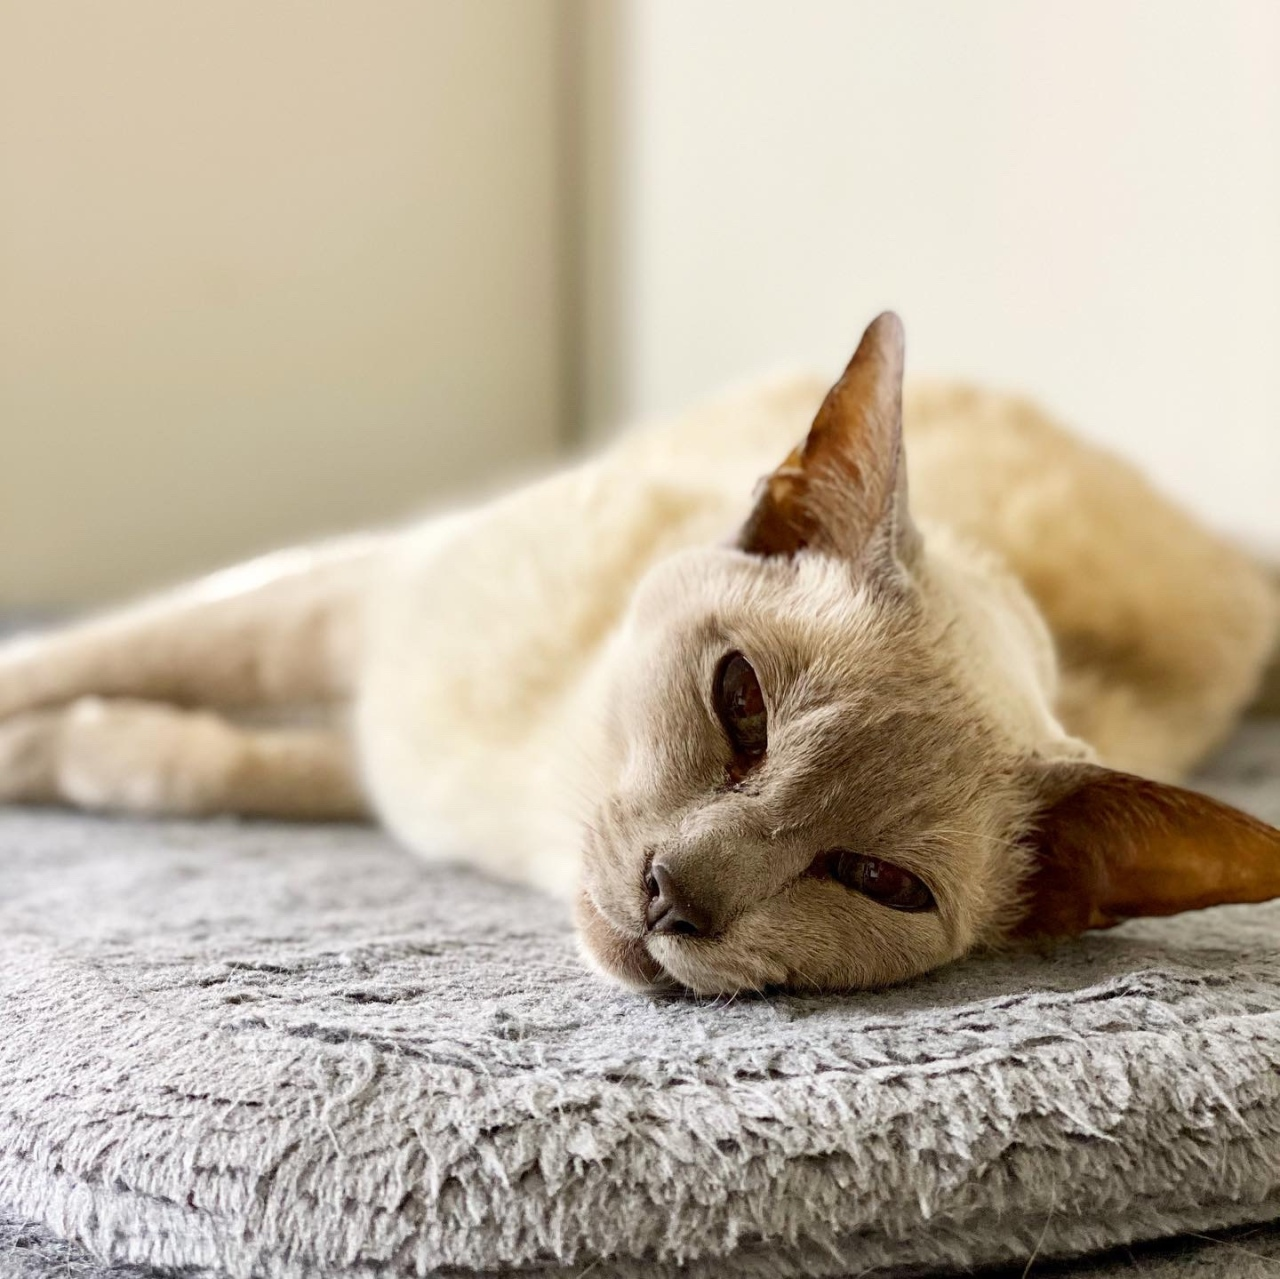 Sissy the lilac point Tonkinese cat looks lovingly at the camera as she lays on her side on her scratching post